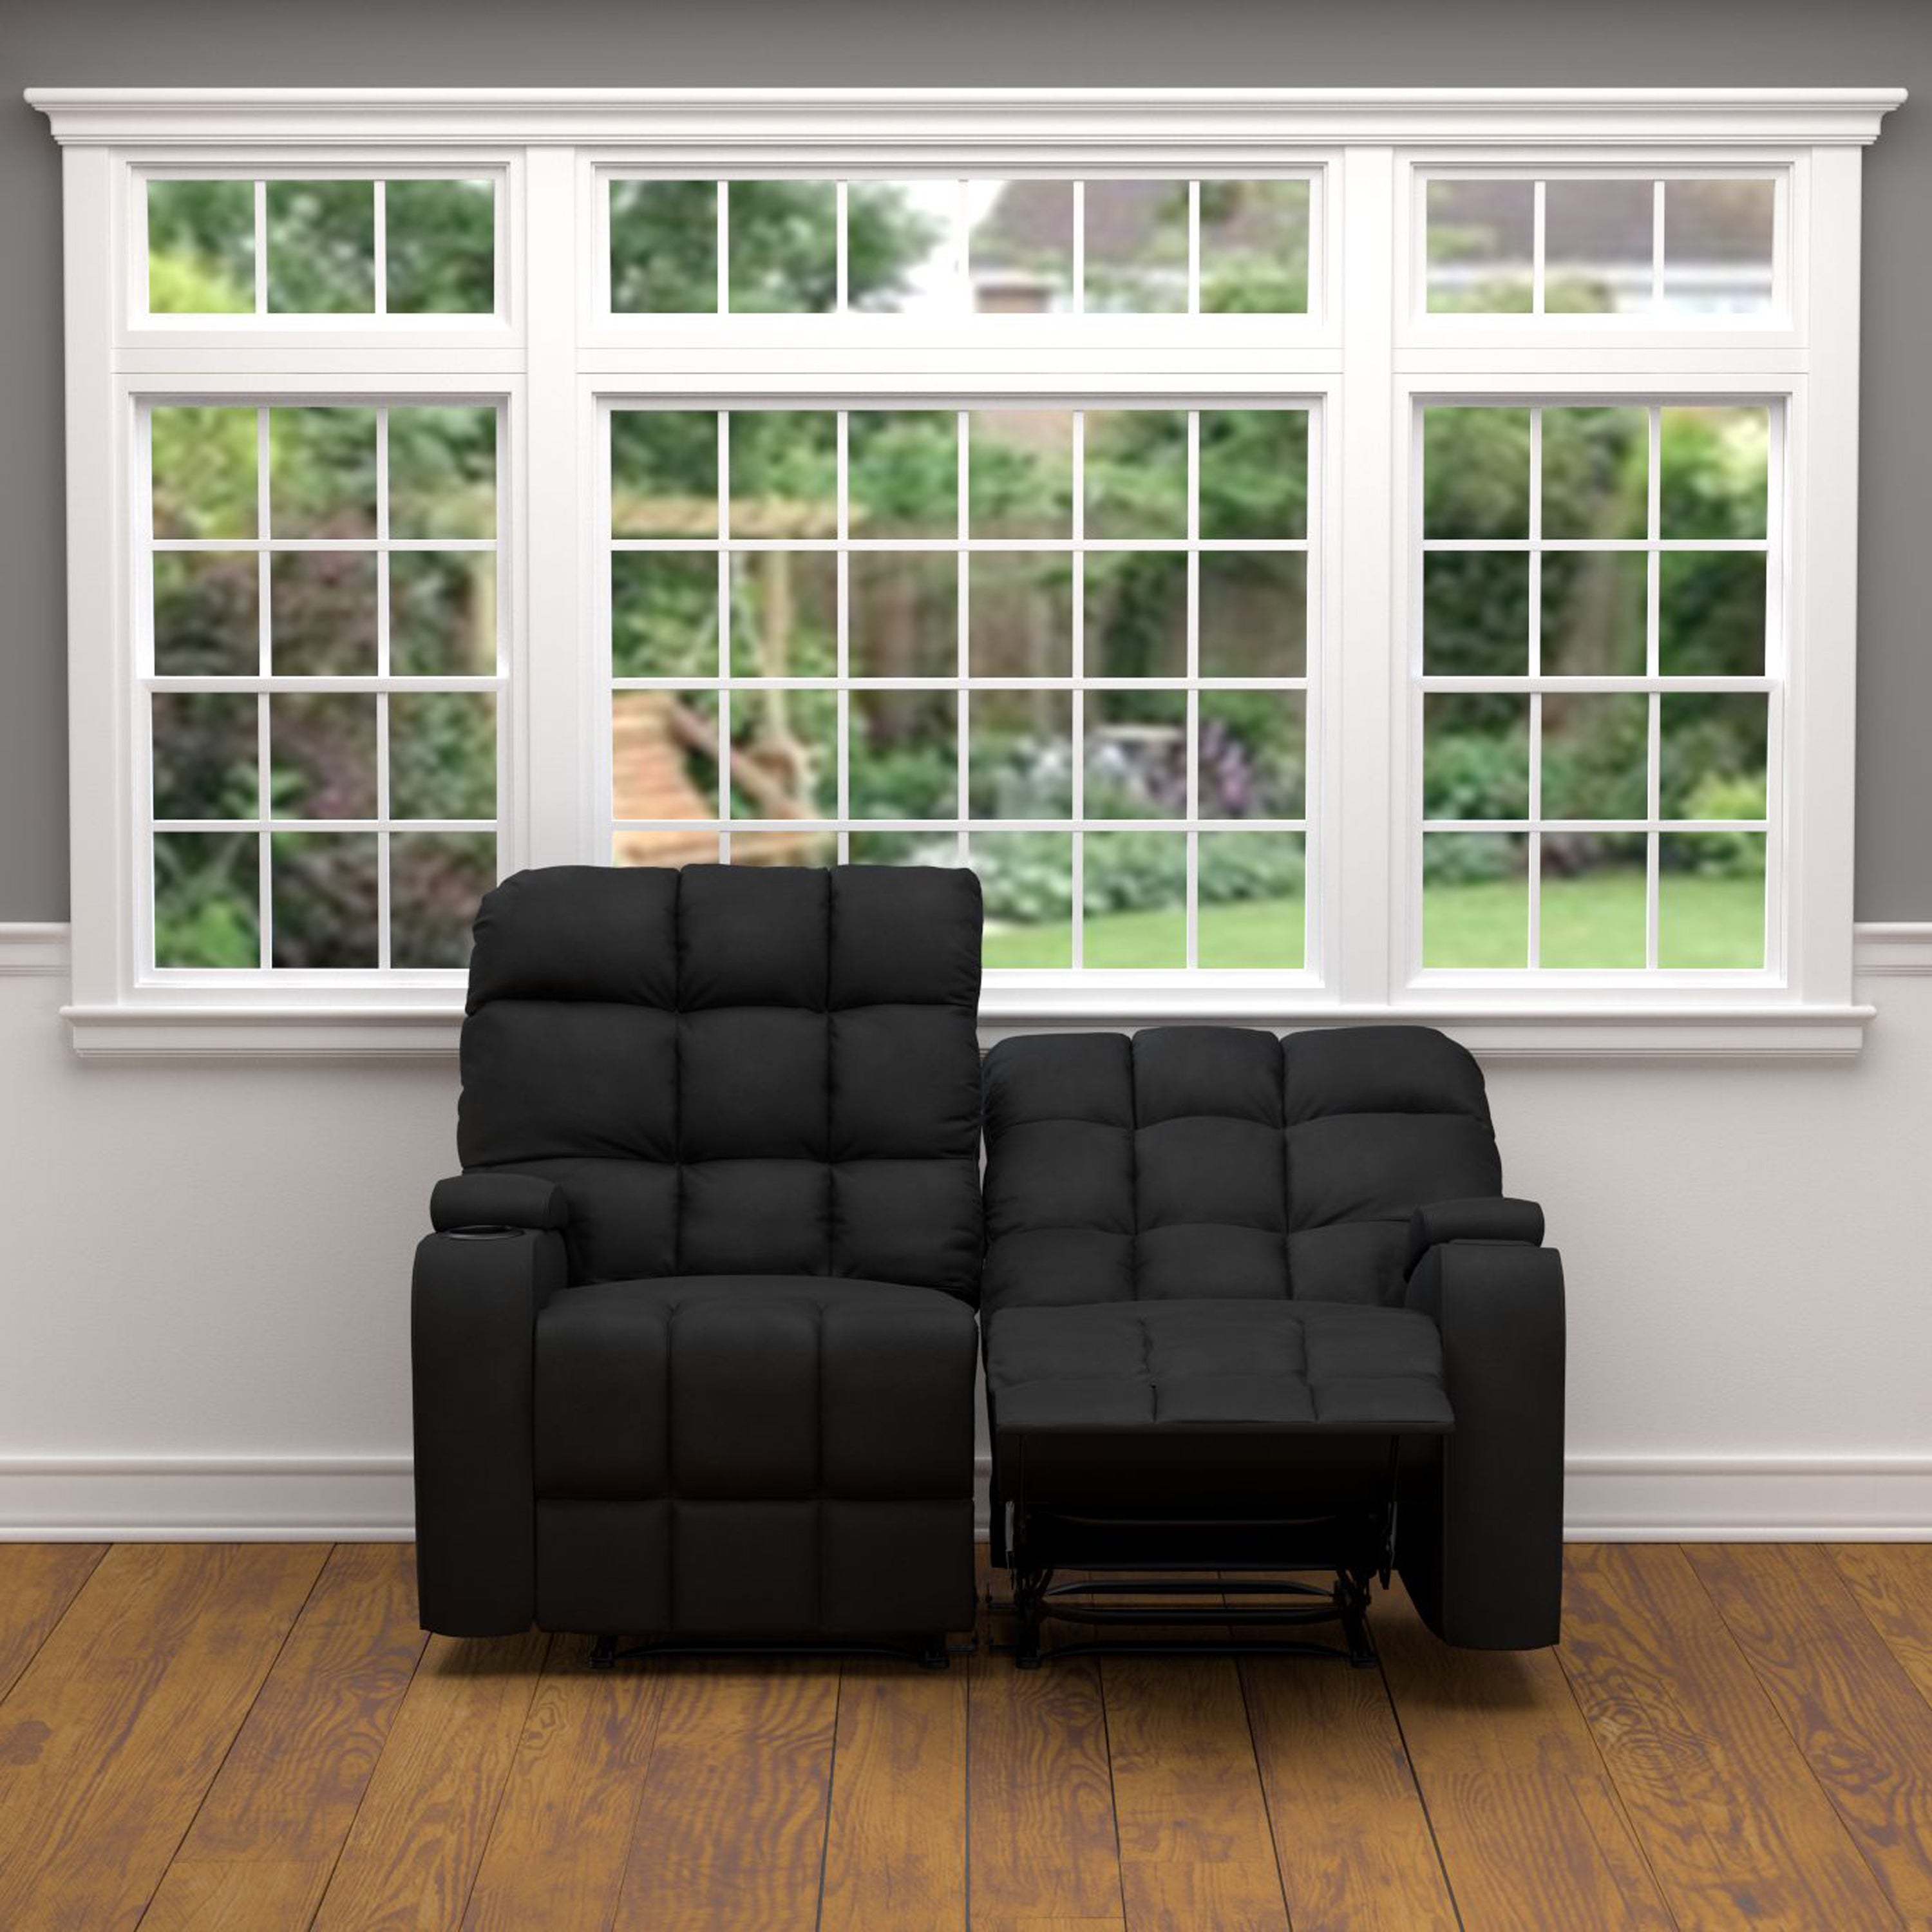 Outstanding Details About Double Recliner Chair Dual Microfiber 2 Seat Reclining Loveseat 2 Seat Black Creativecarmelina Interior Chair Design Creativecarmelinacom